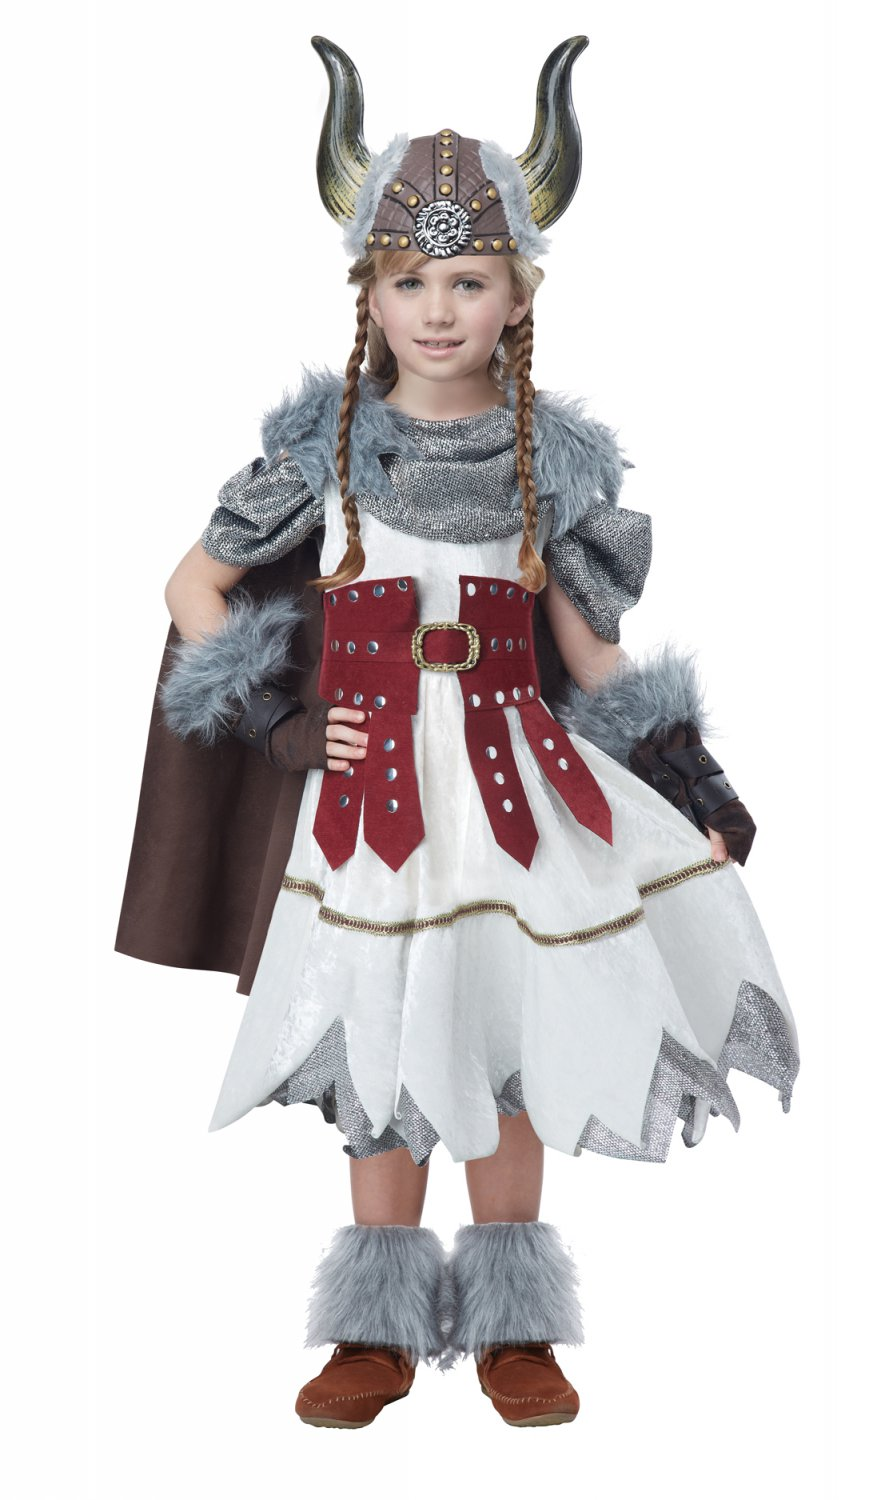 Nordic Valorous Vikings Girl Game of Thrones Child Costume Size: Large #00532